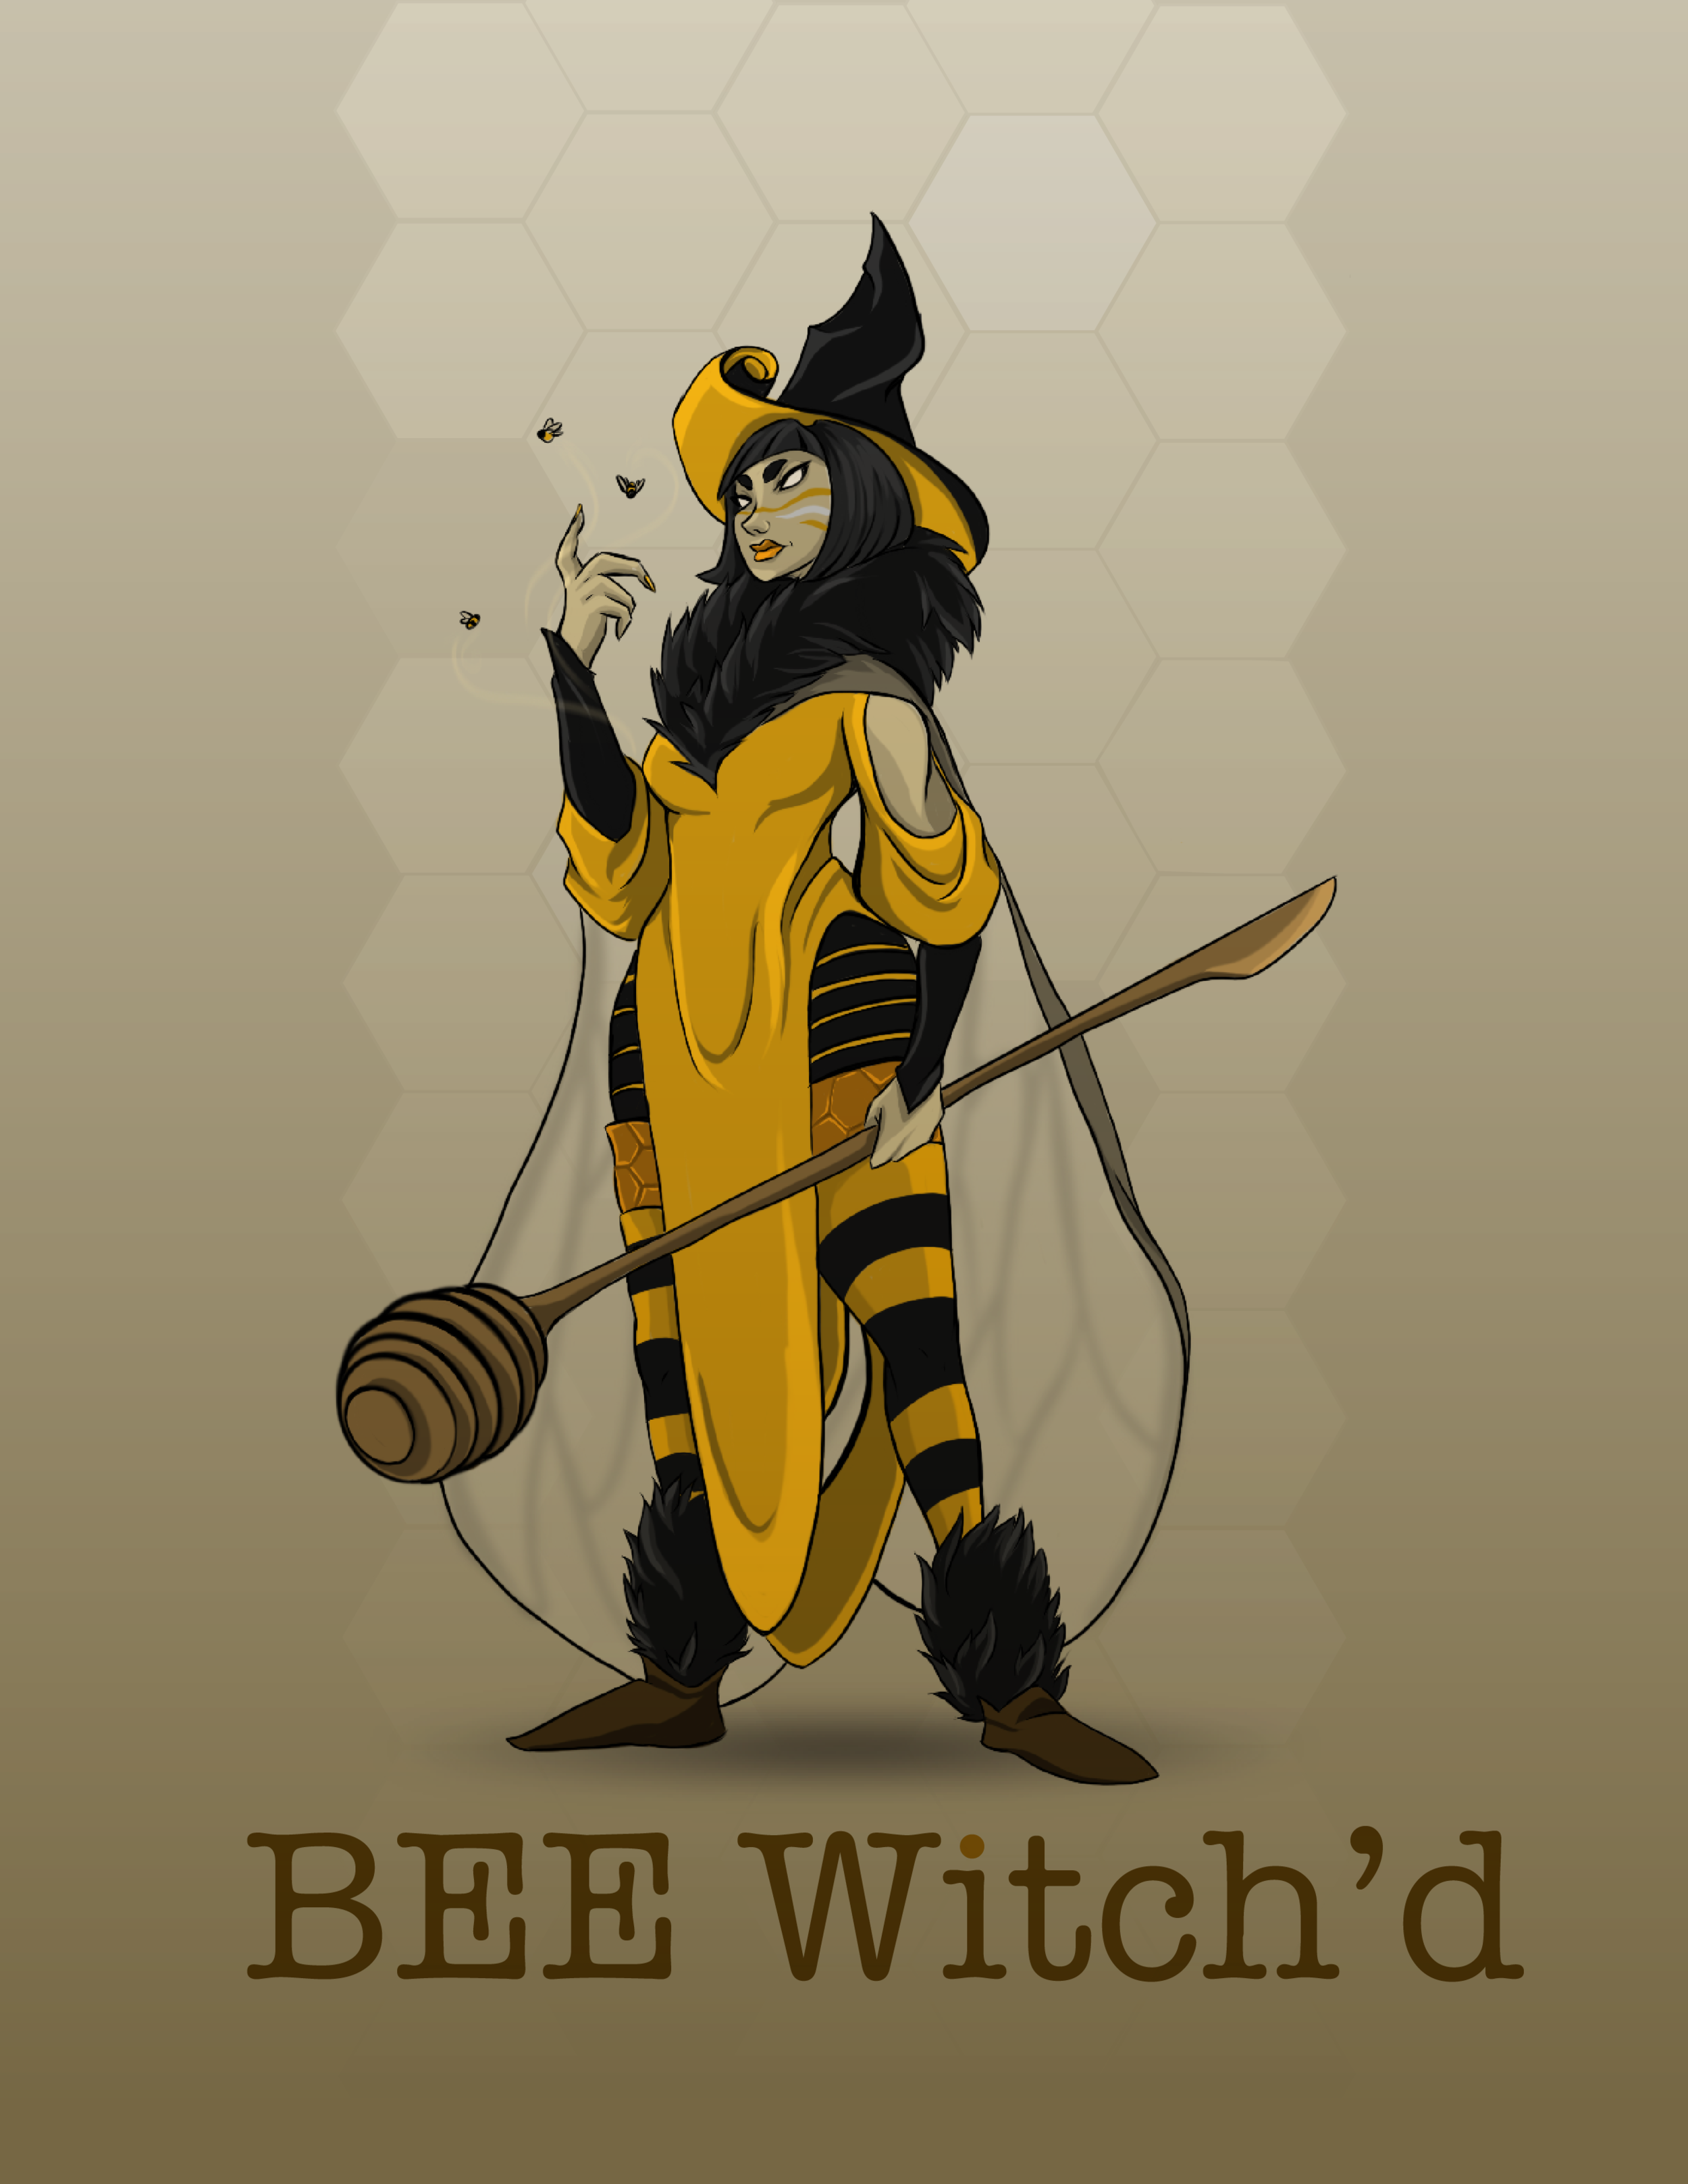 Beewitchd-01.png